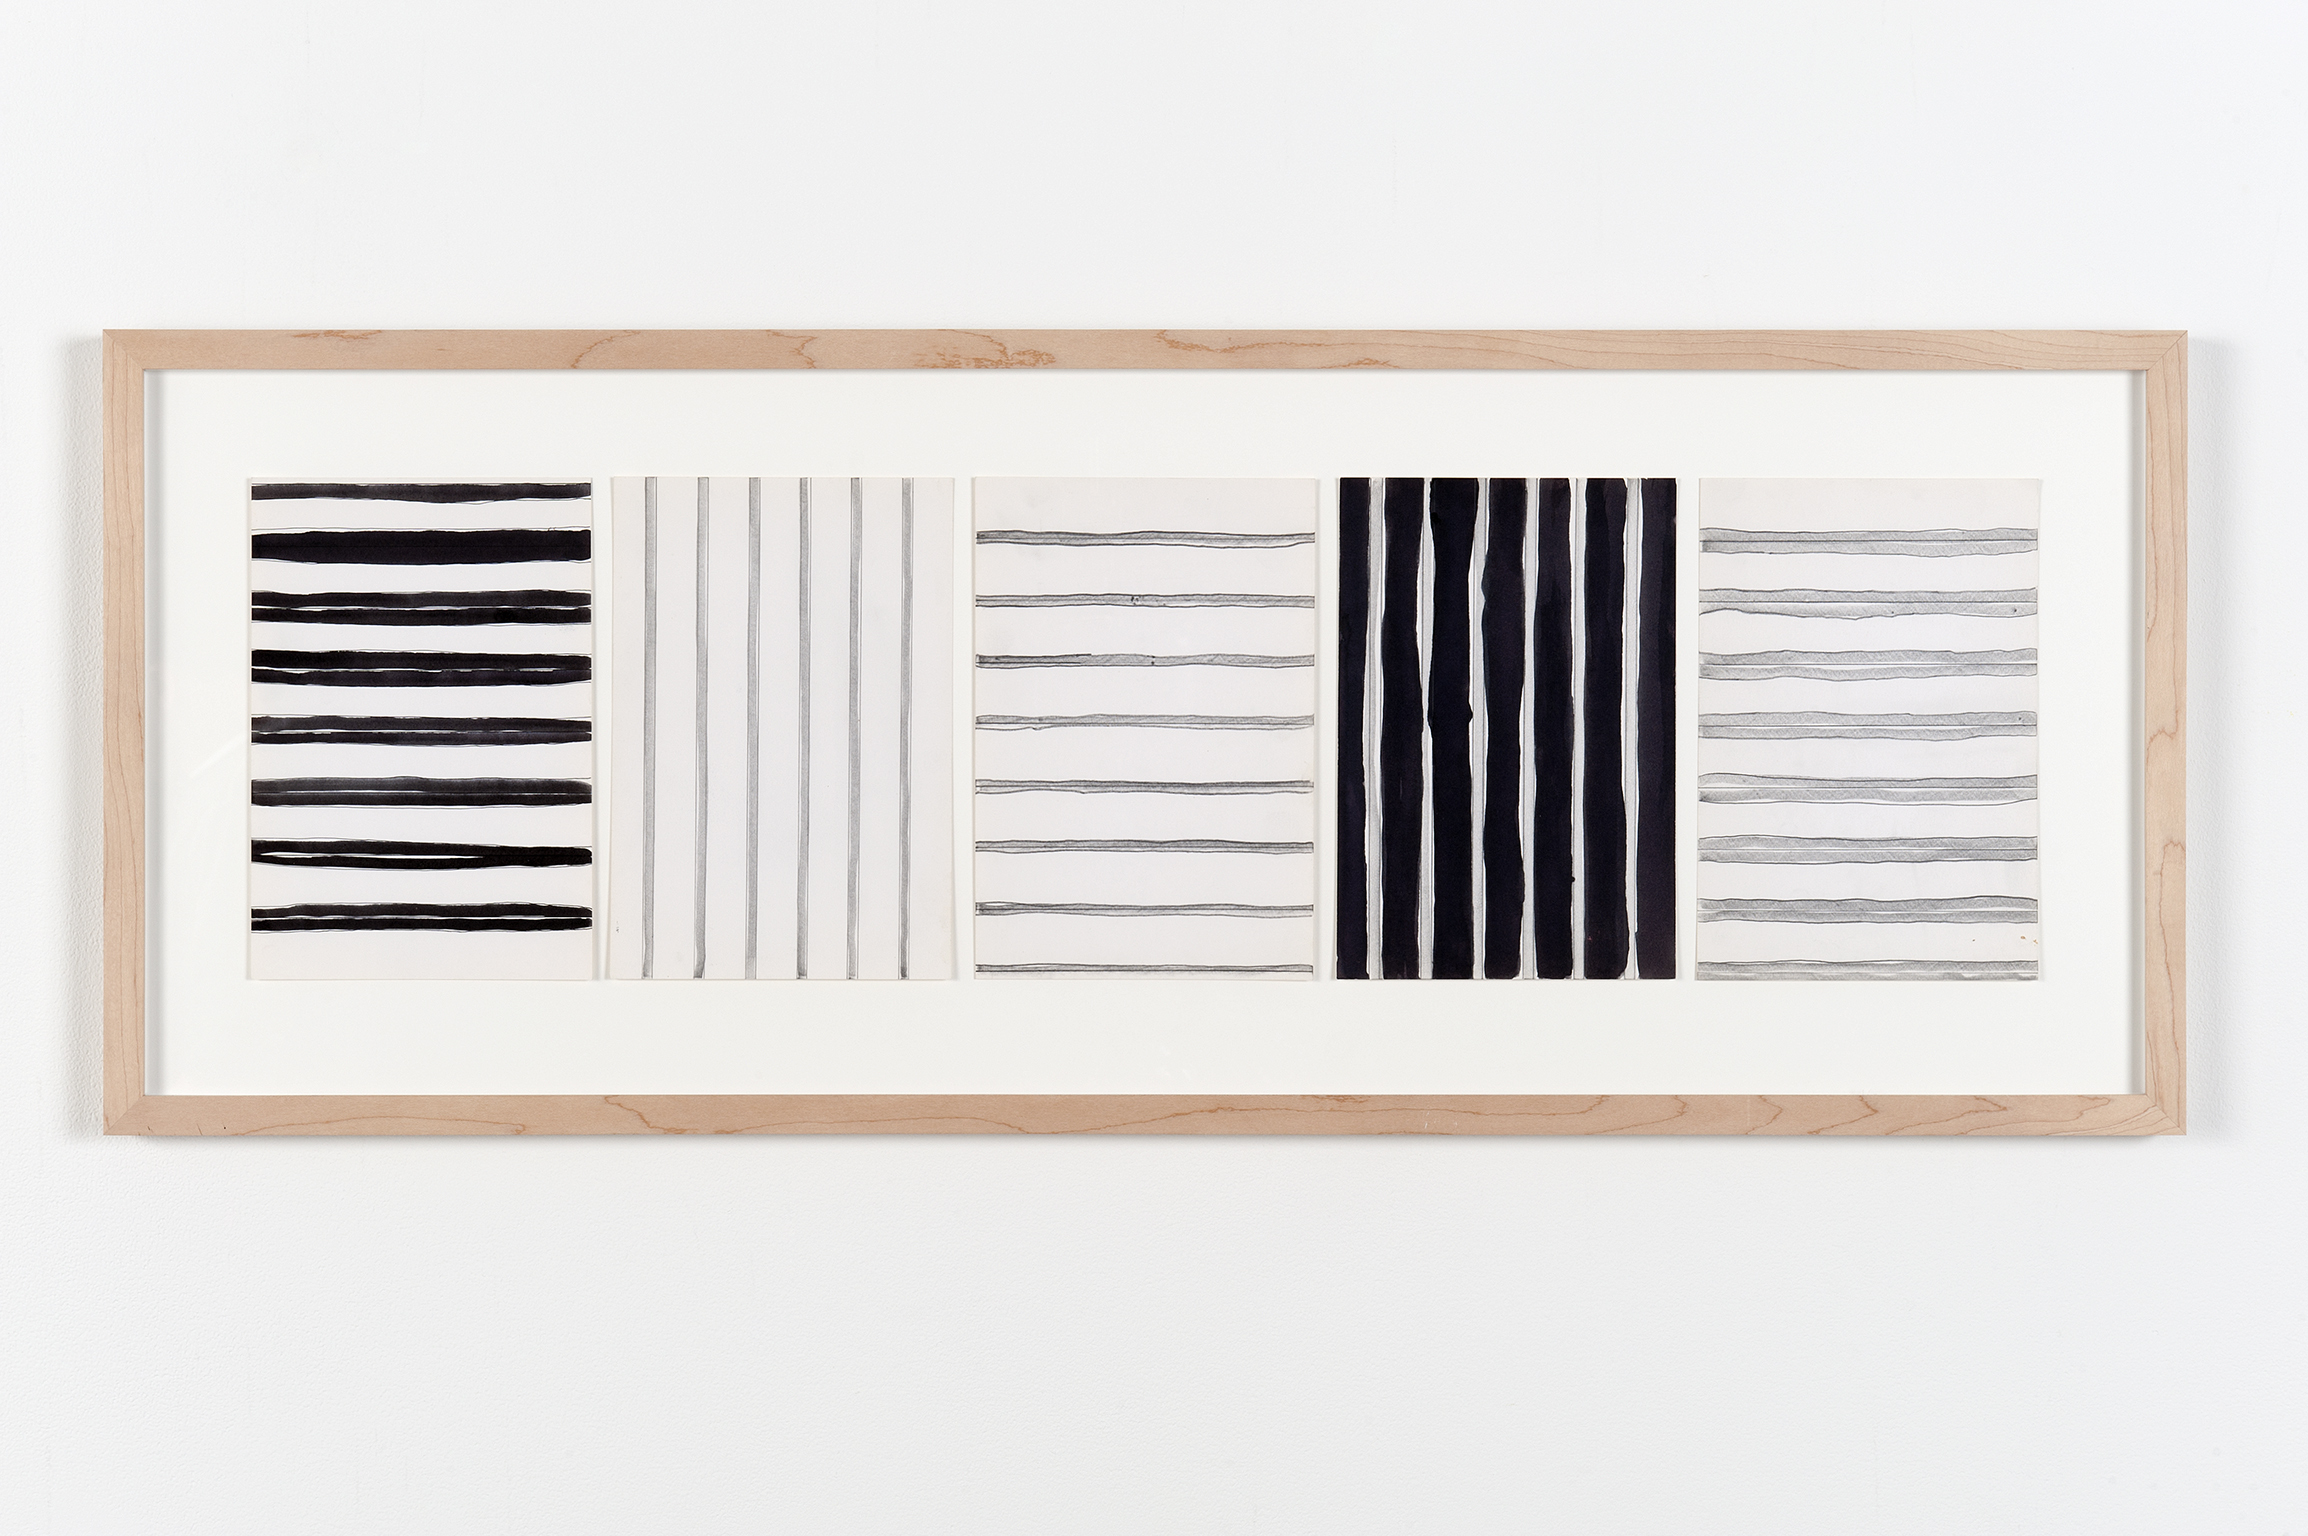 Robert Kleyn, Lines, 1979, india ink and graphite on paper, 16 x 40 in. (39 x 102 cm) by